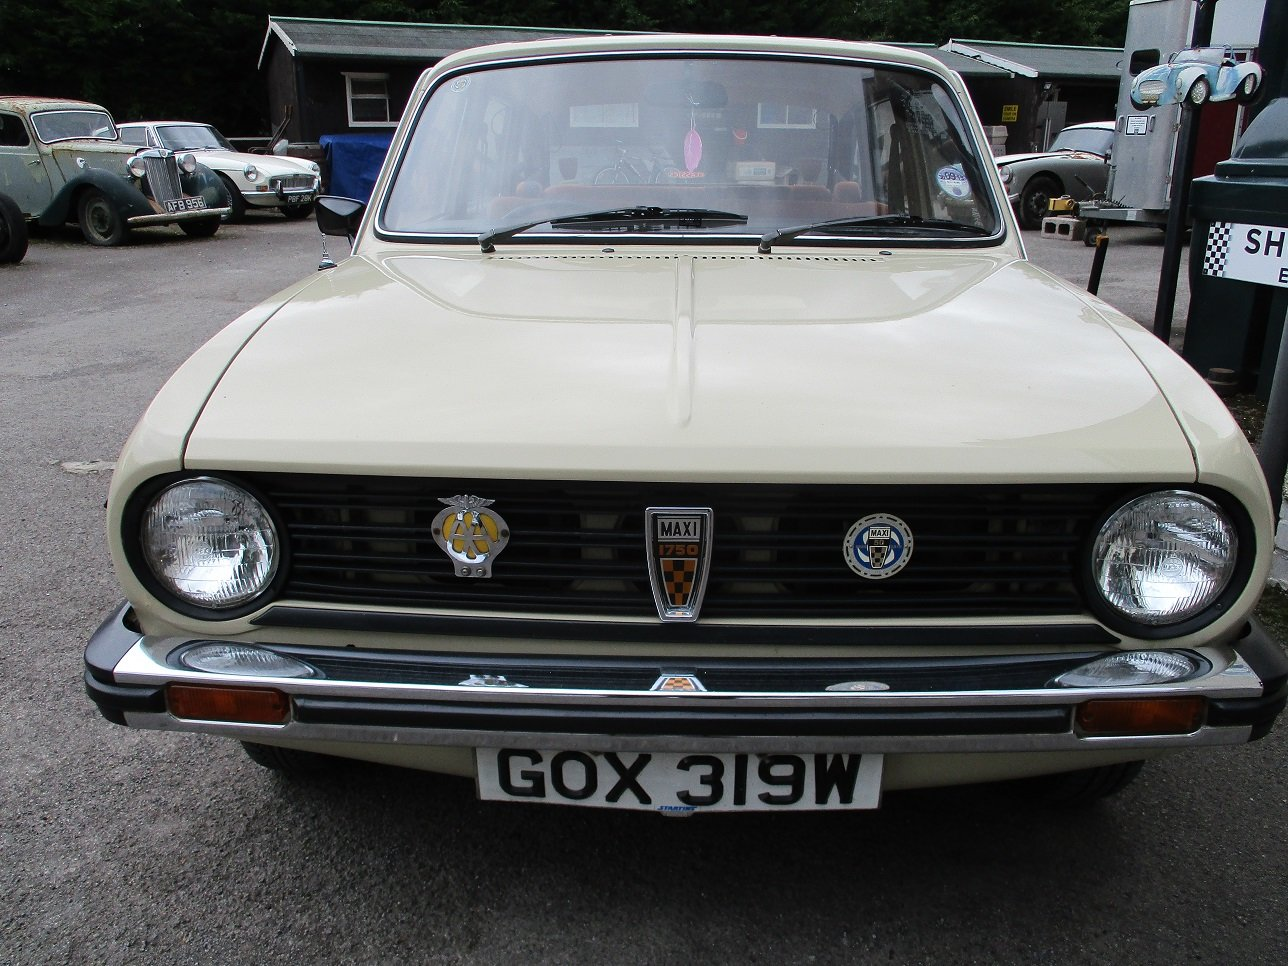 1980 Austin Maxi - Good Condition For Sale (picture 1 of 4)